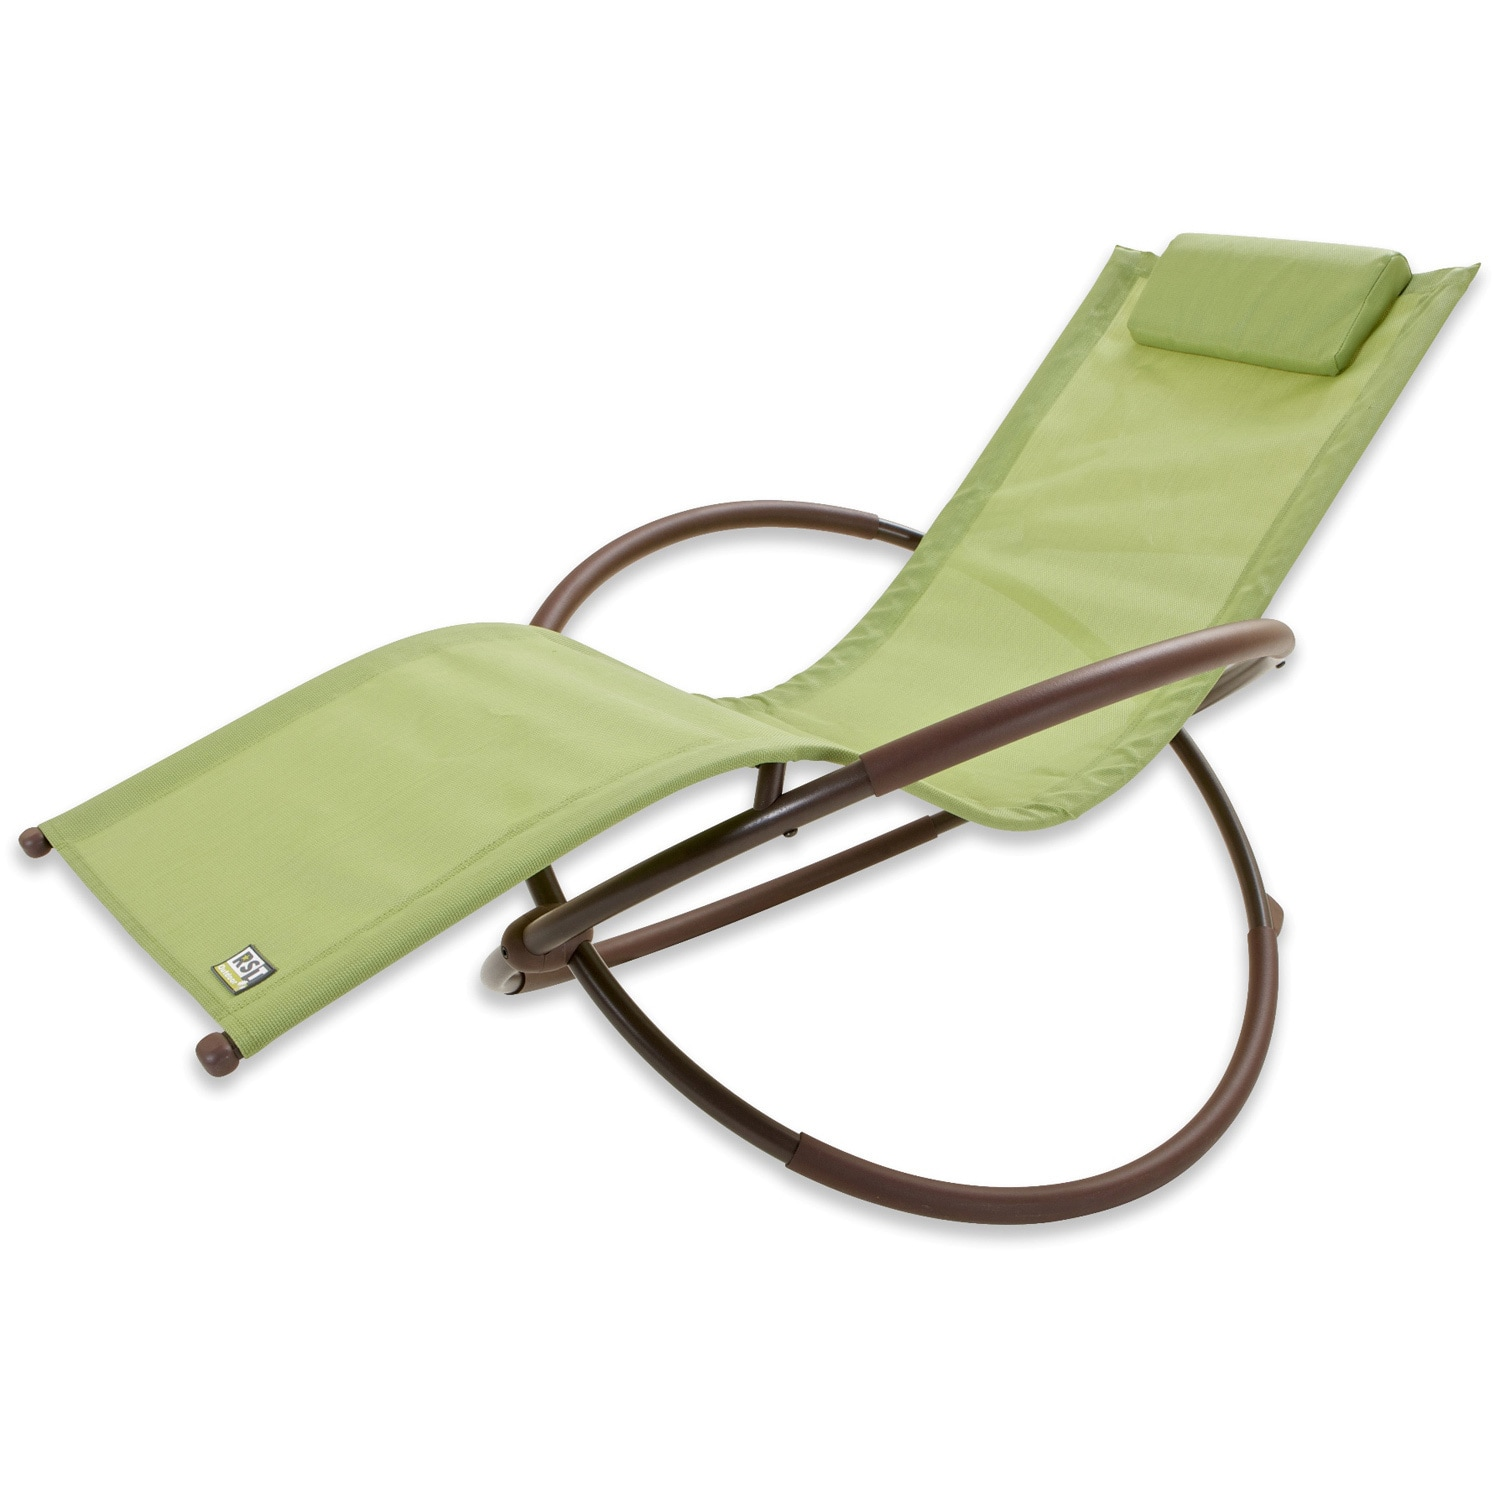 rst brands orbital zero gravity patio lounger rocking chair - free